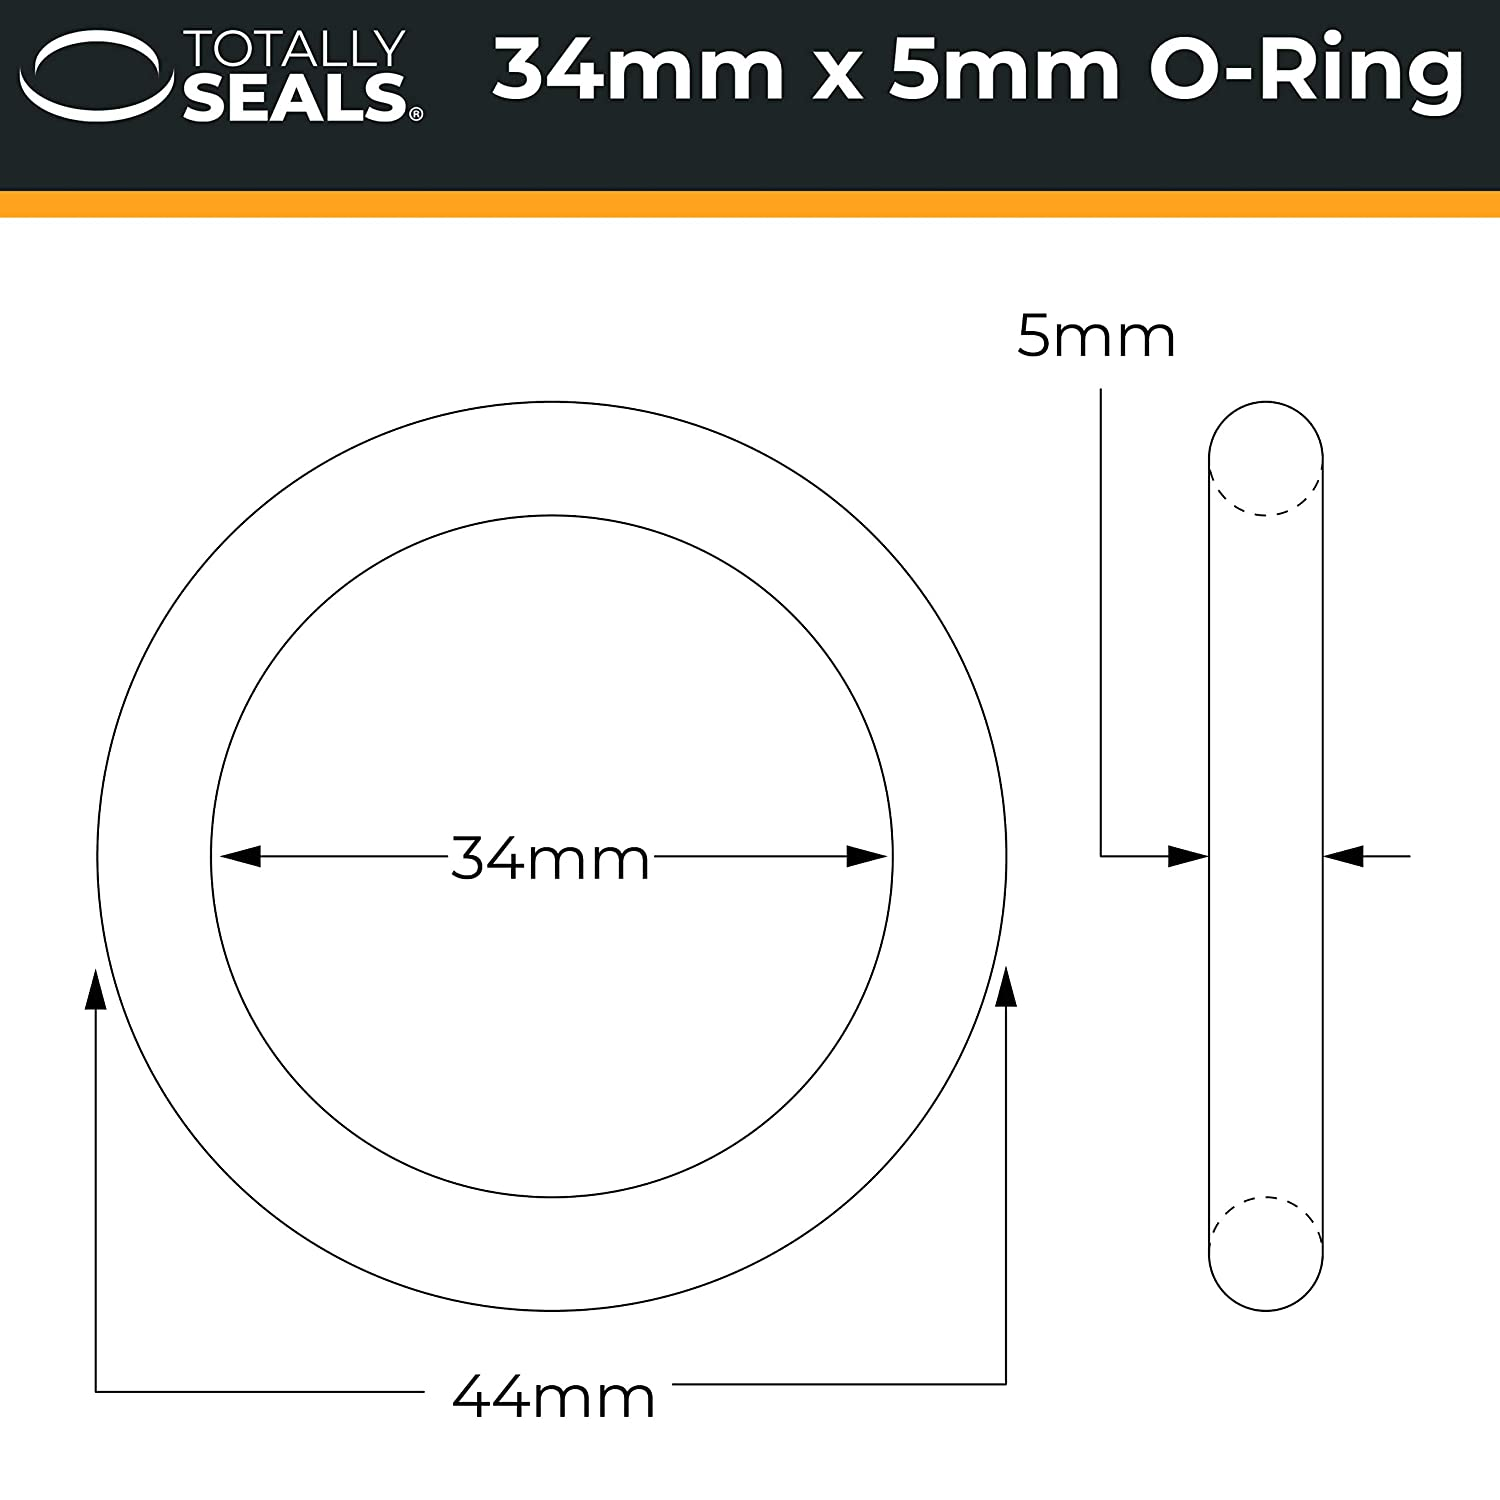 Nitrile Rubber O-Rings 70A Shore Hardness Pack of 10 44mm OD 34mm x 5mm